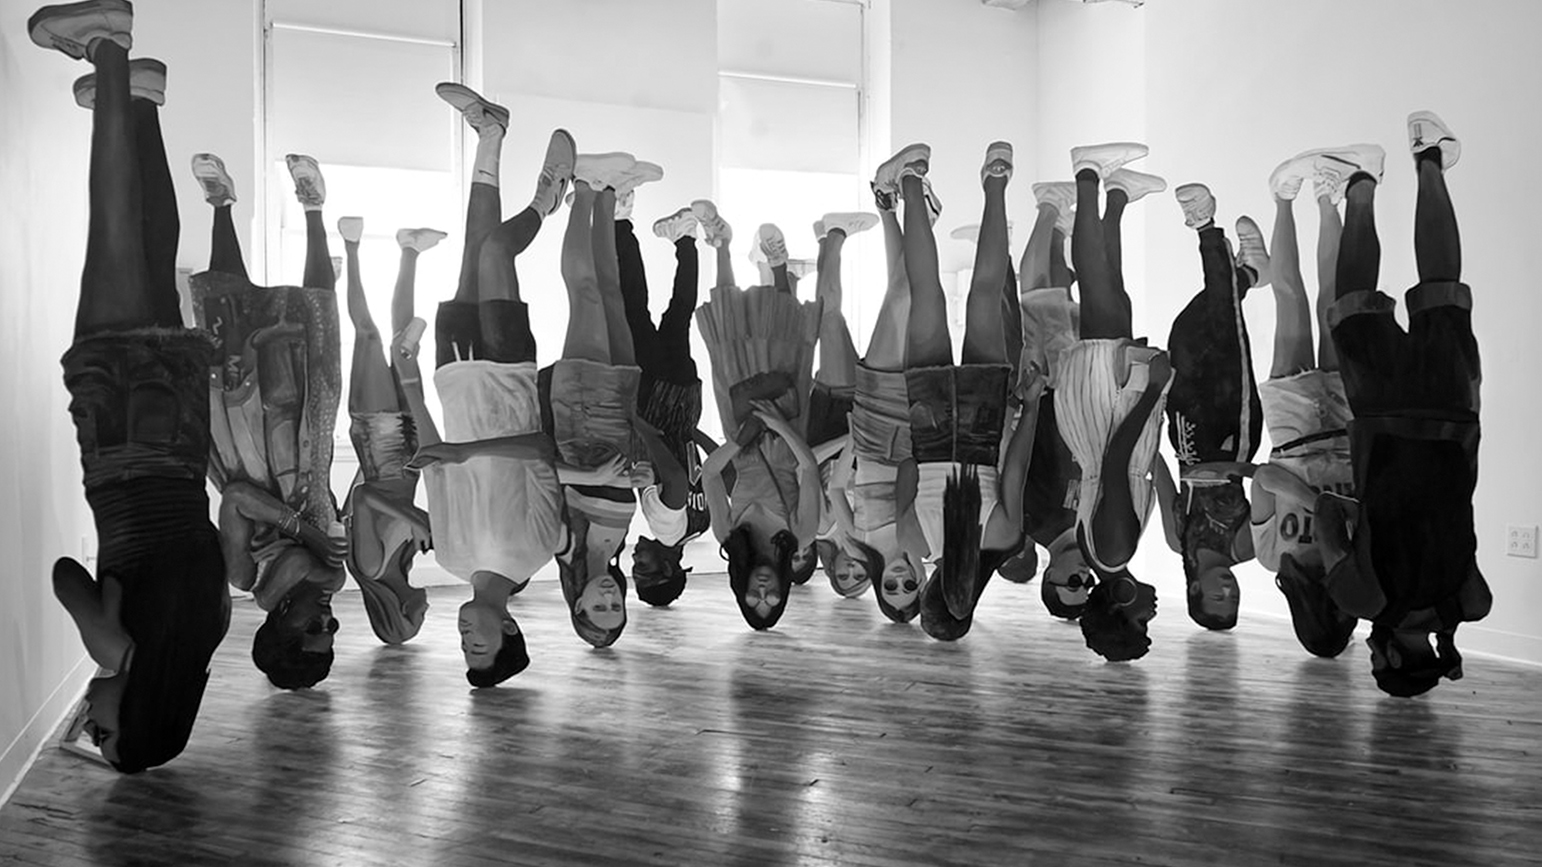 Black and white digitally-created image of a group of people upside down in an empty room